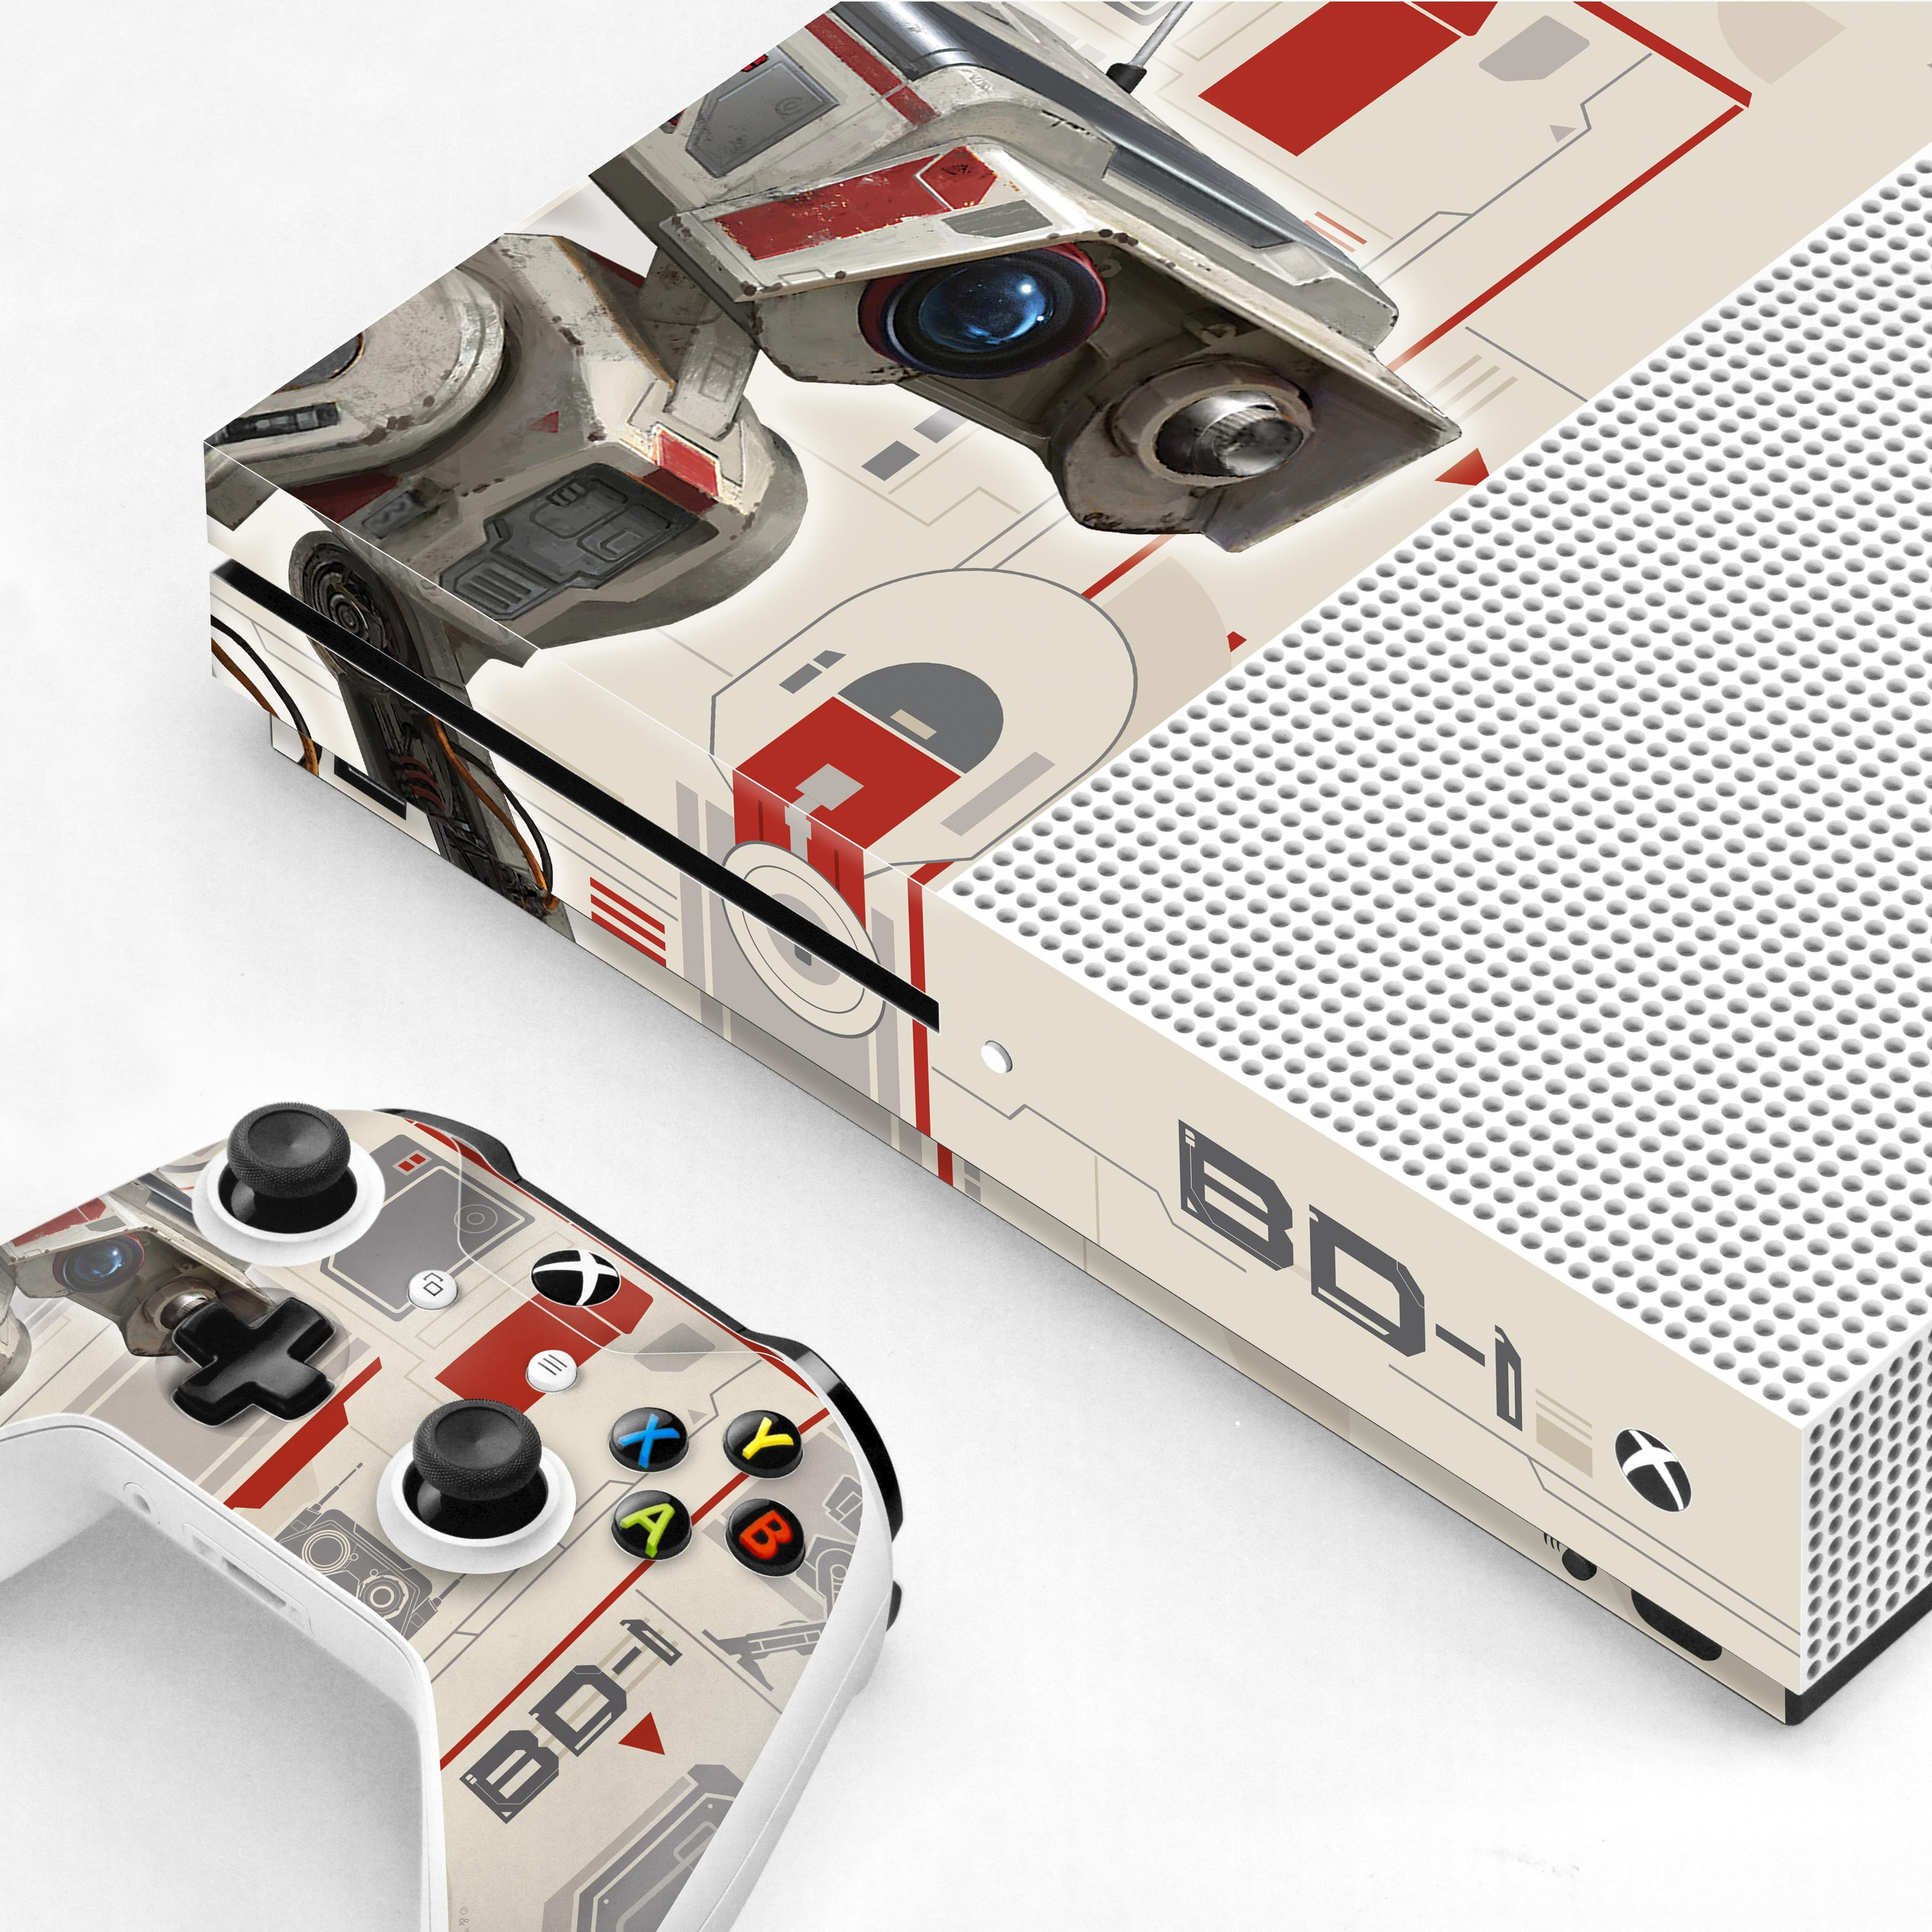 Xbox One S Console and Controller Skin with a Star Wars Jedi Fallen Order - BD-1 Design, Image 1